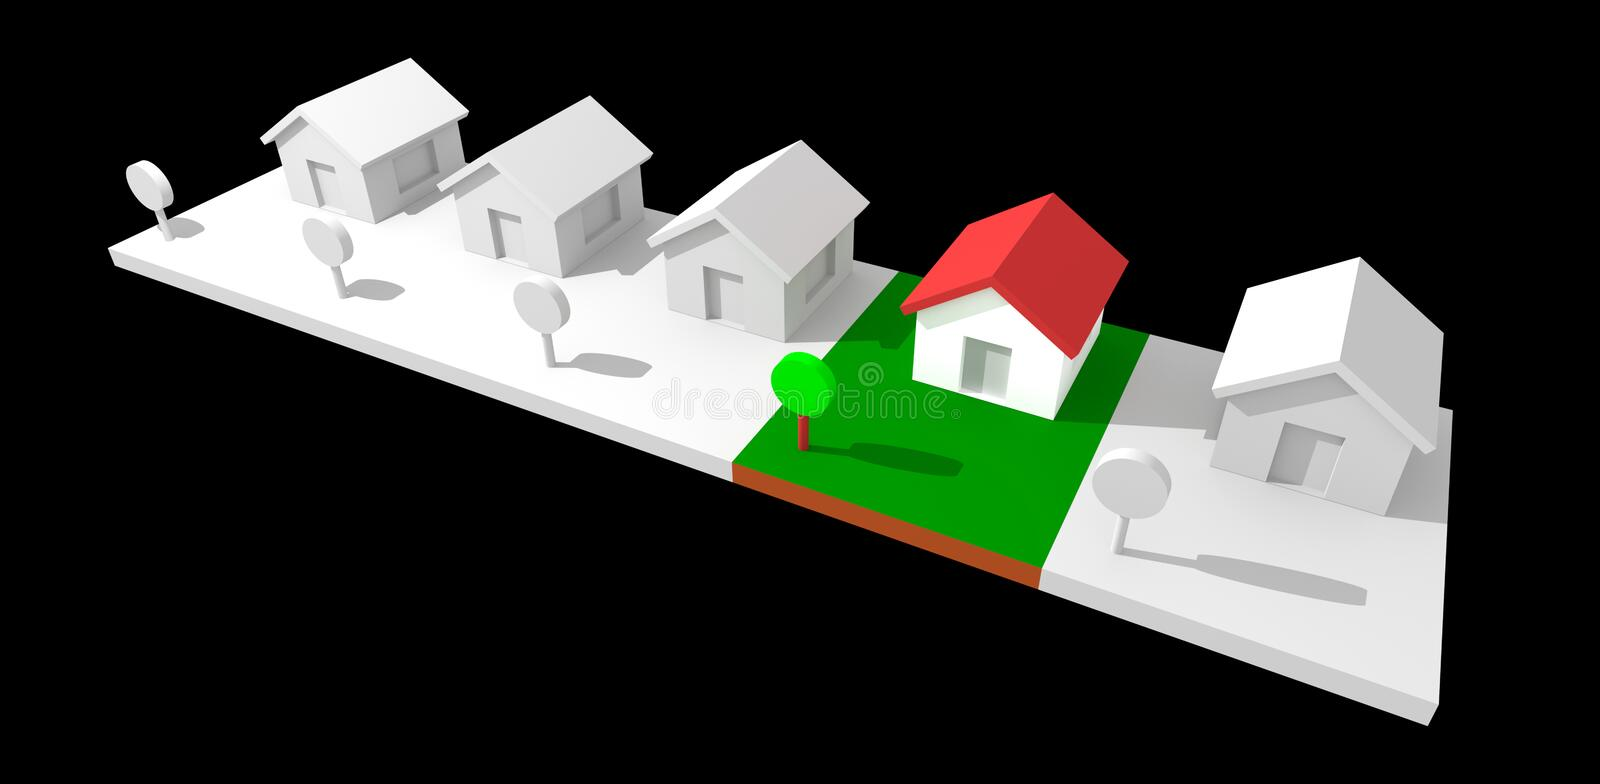 3d neighborhood houses. 3d neighborhood houses isolated with clipping path. Rendered image vector illustration